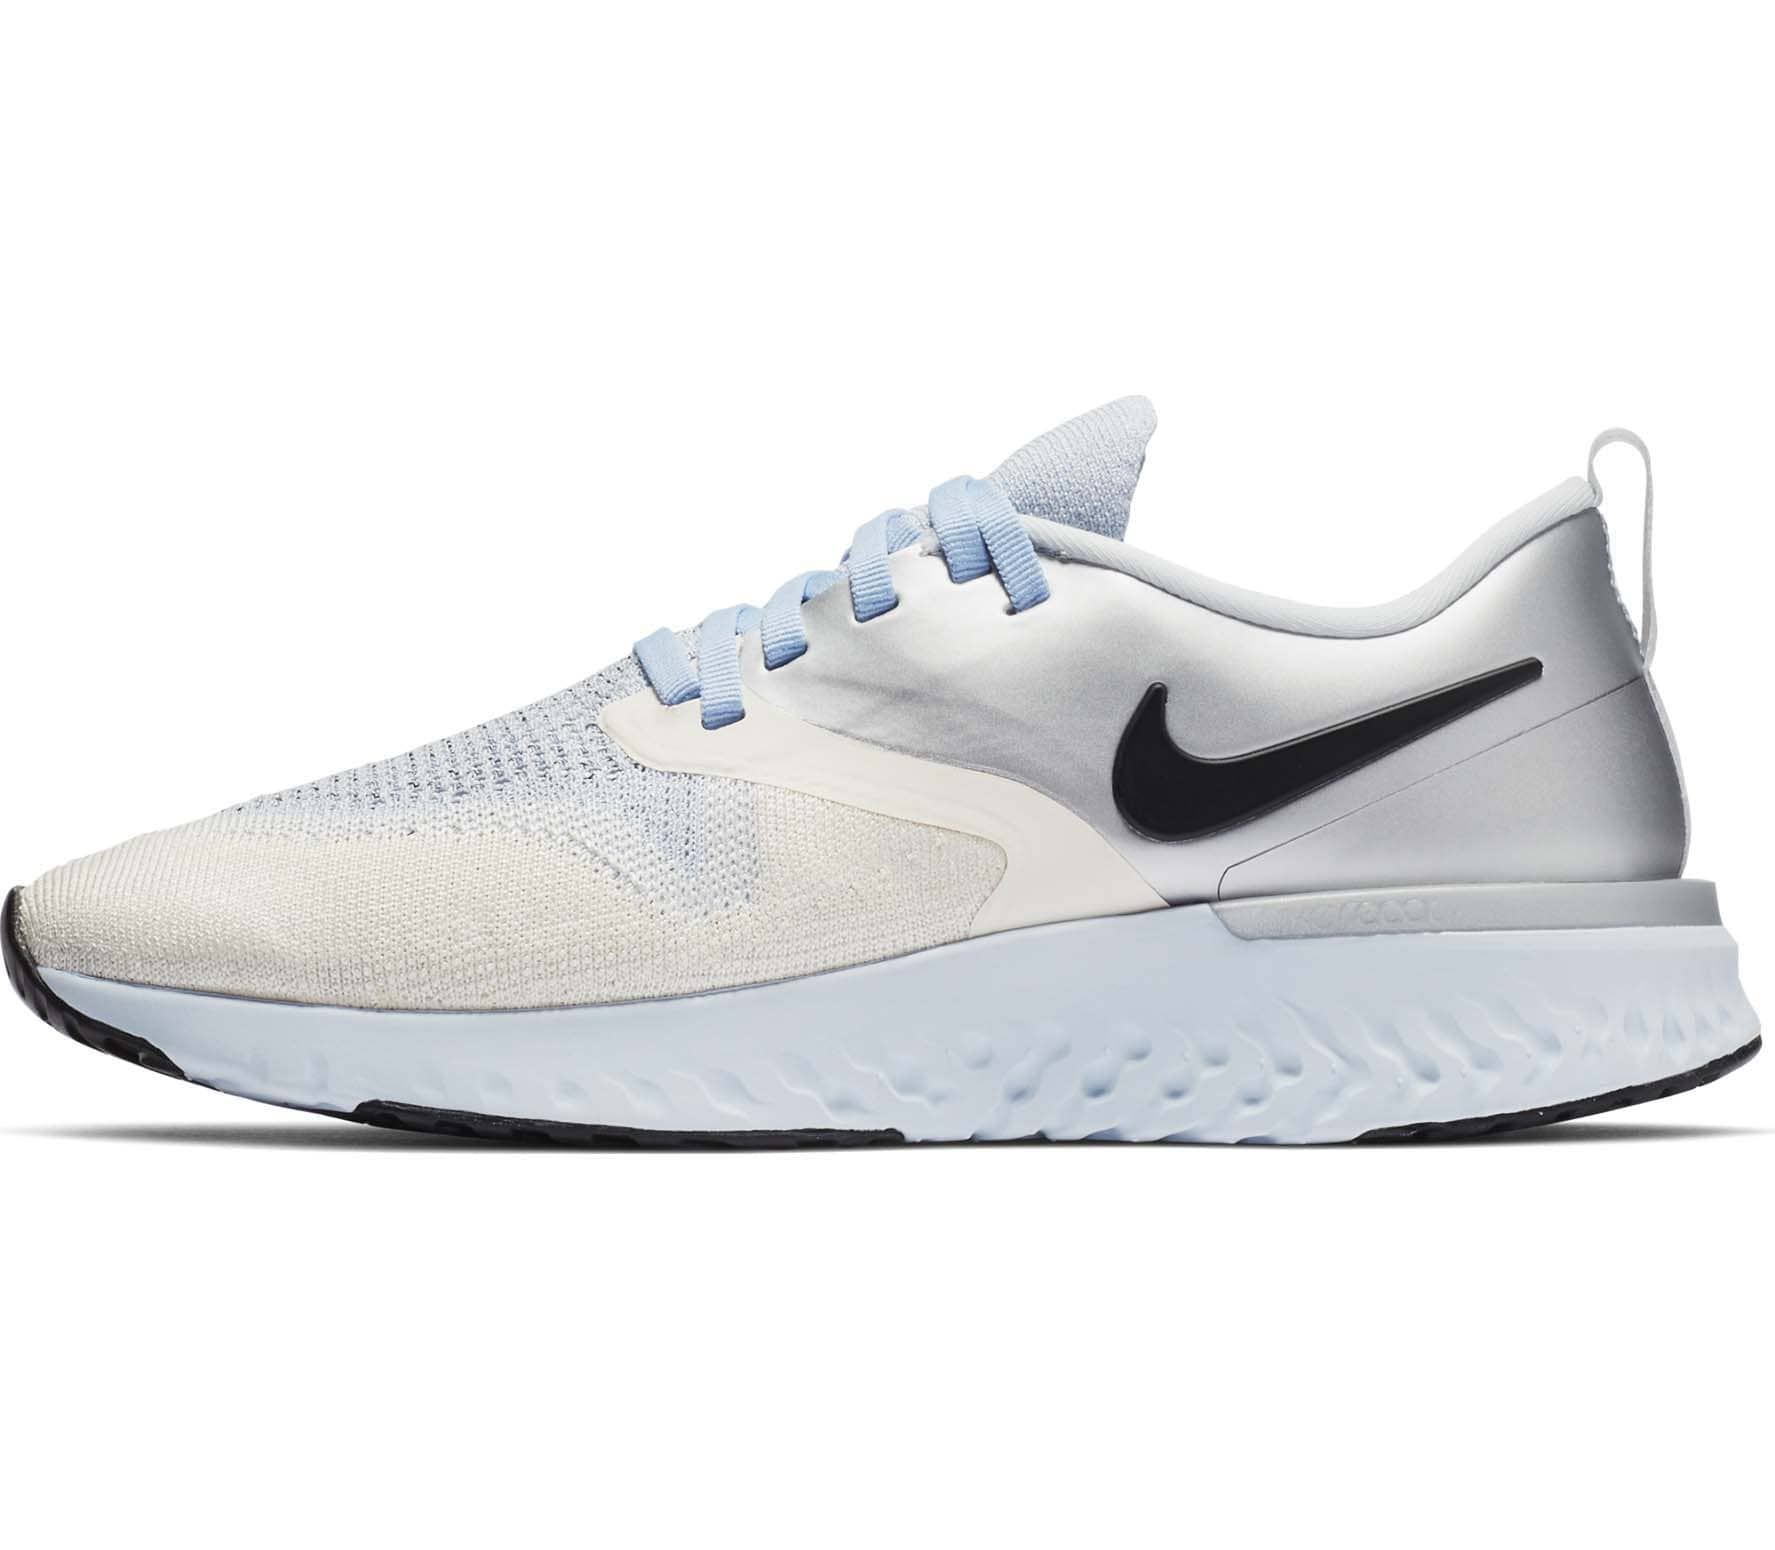 the latest 129c8 f53c7 Nike - Odyssey React 2 Flyknit Premium women s running shoes (silver blue)